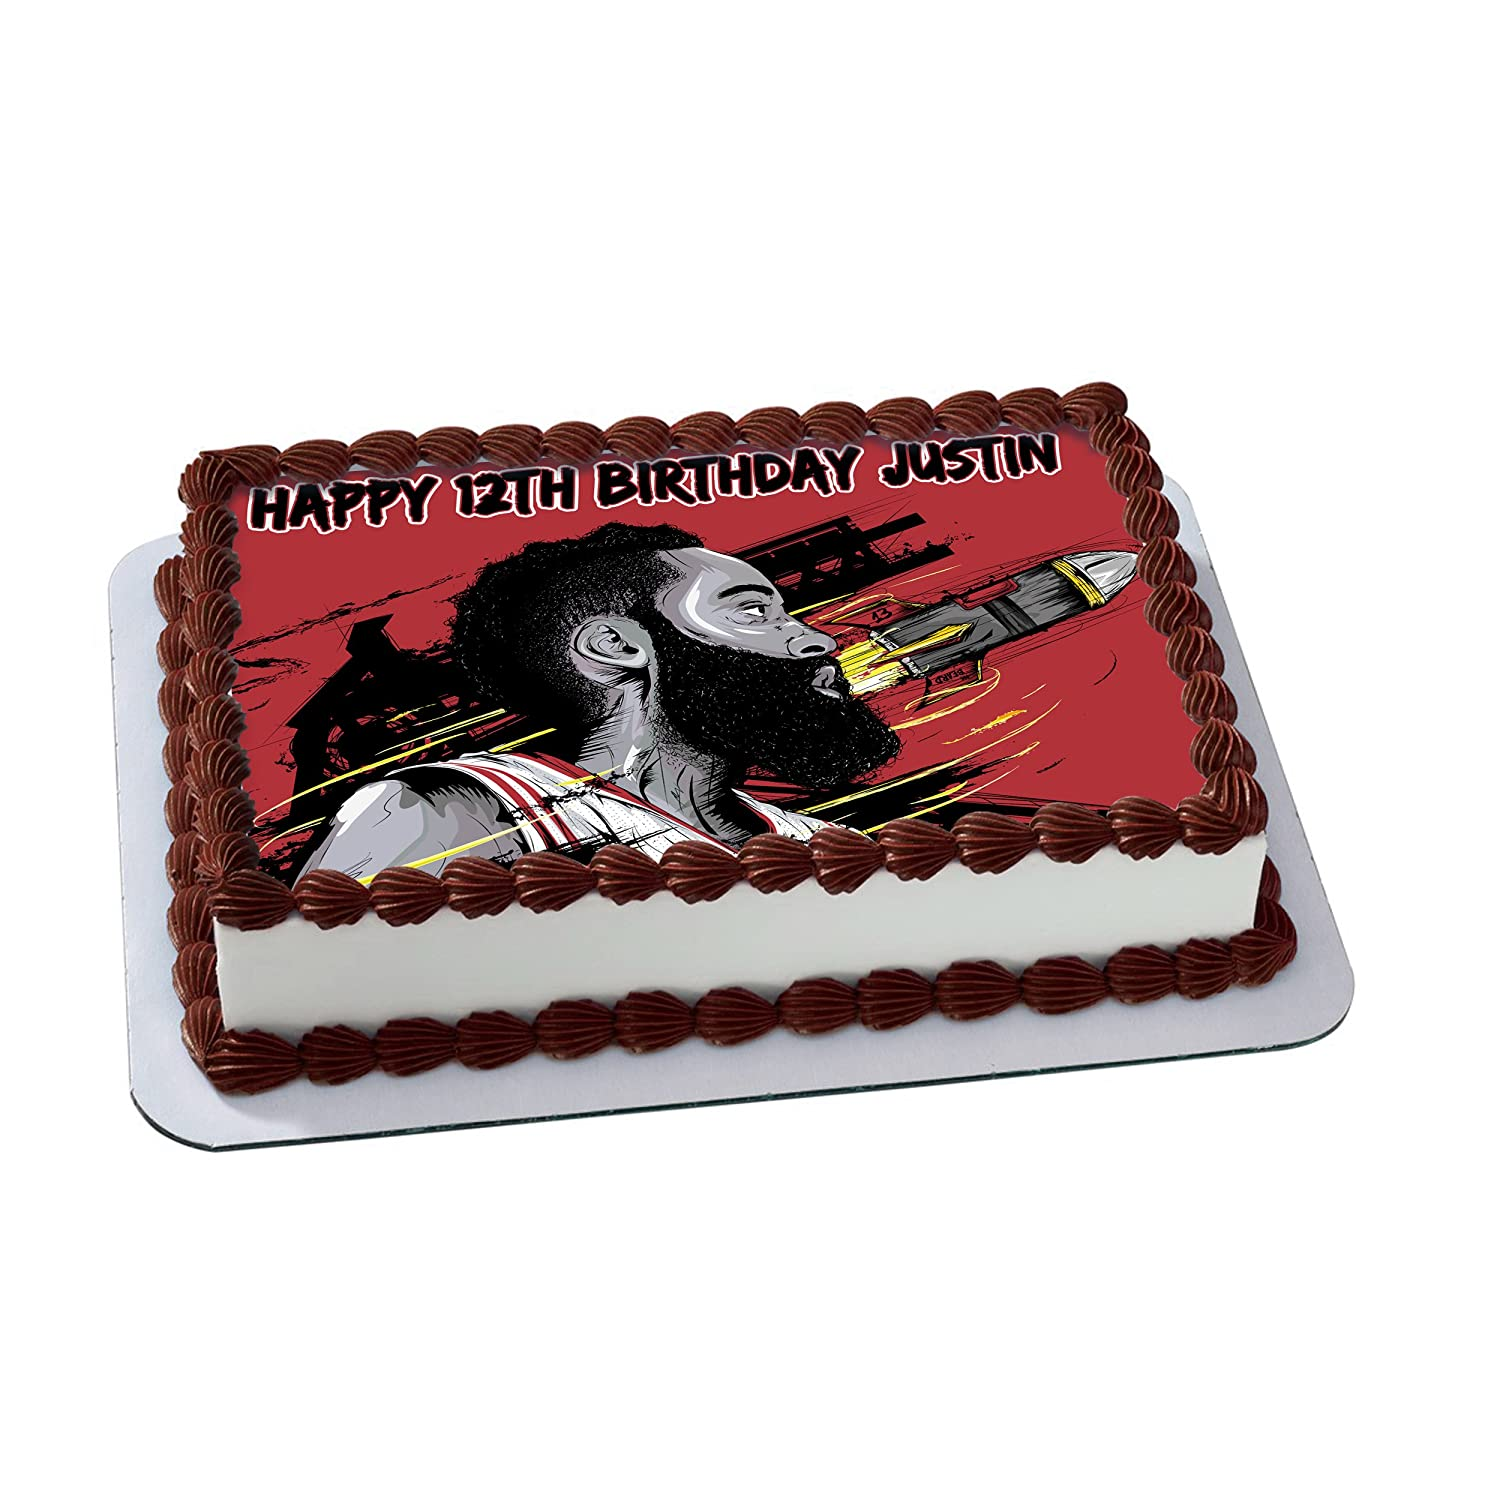 James Harden Houston Rockets Personalized Cake Toppers Icing Sugar